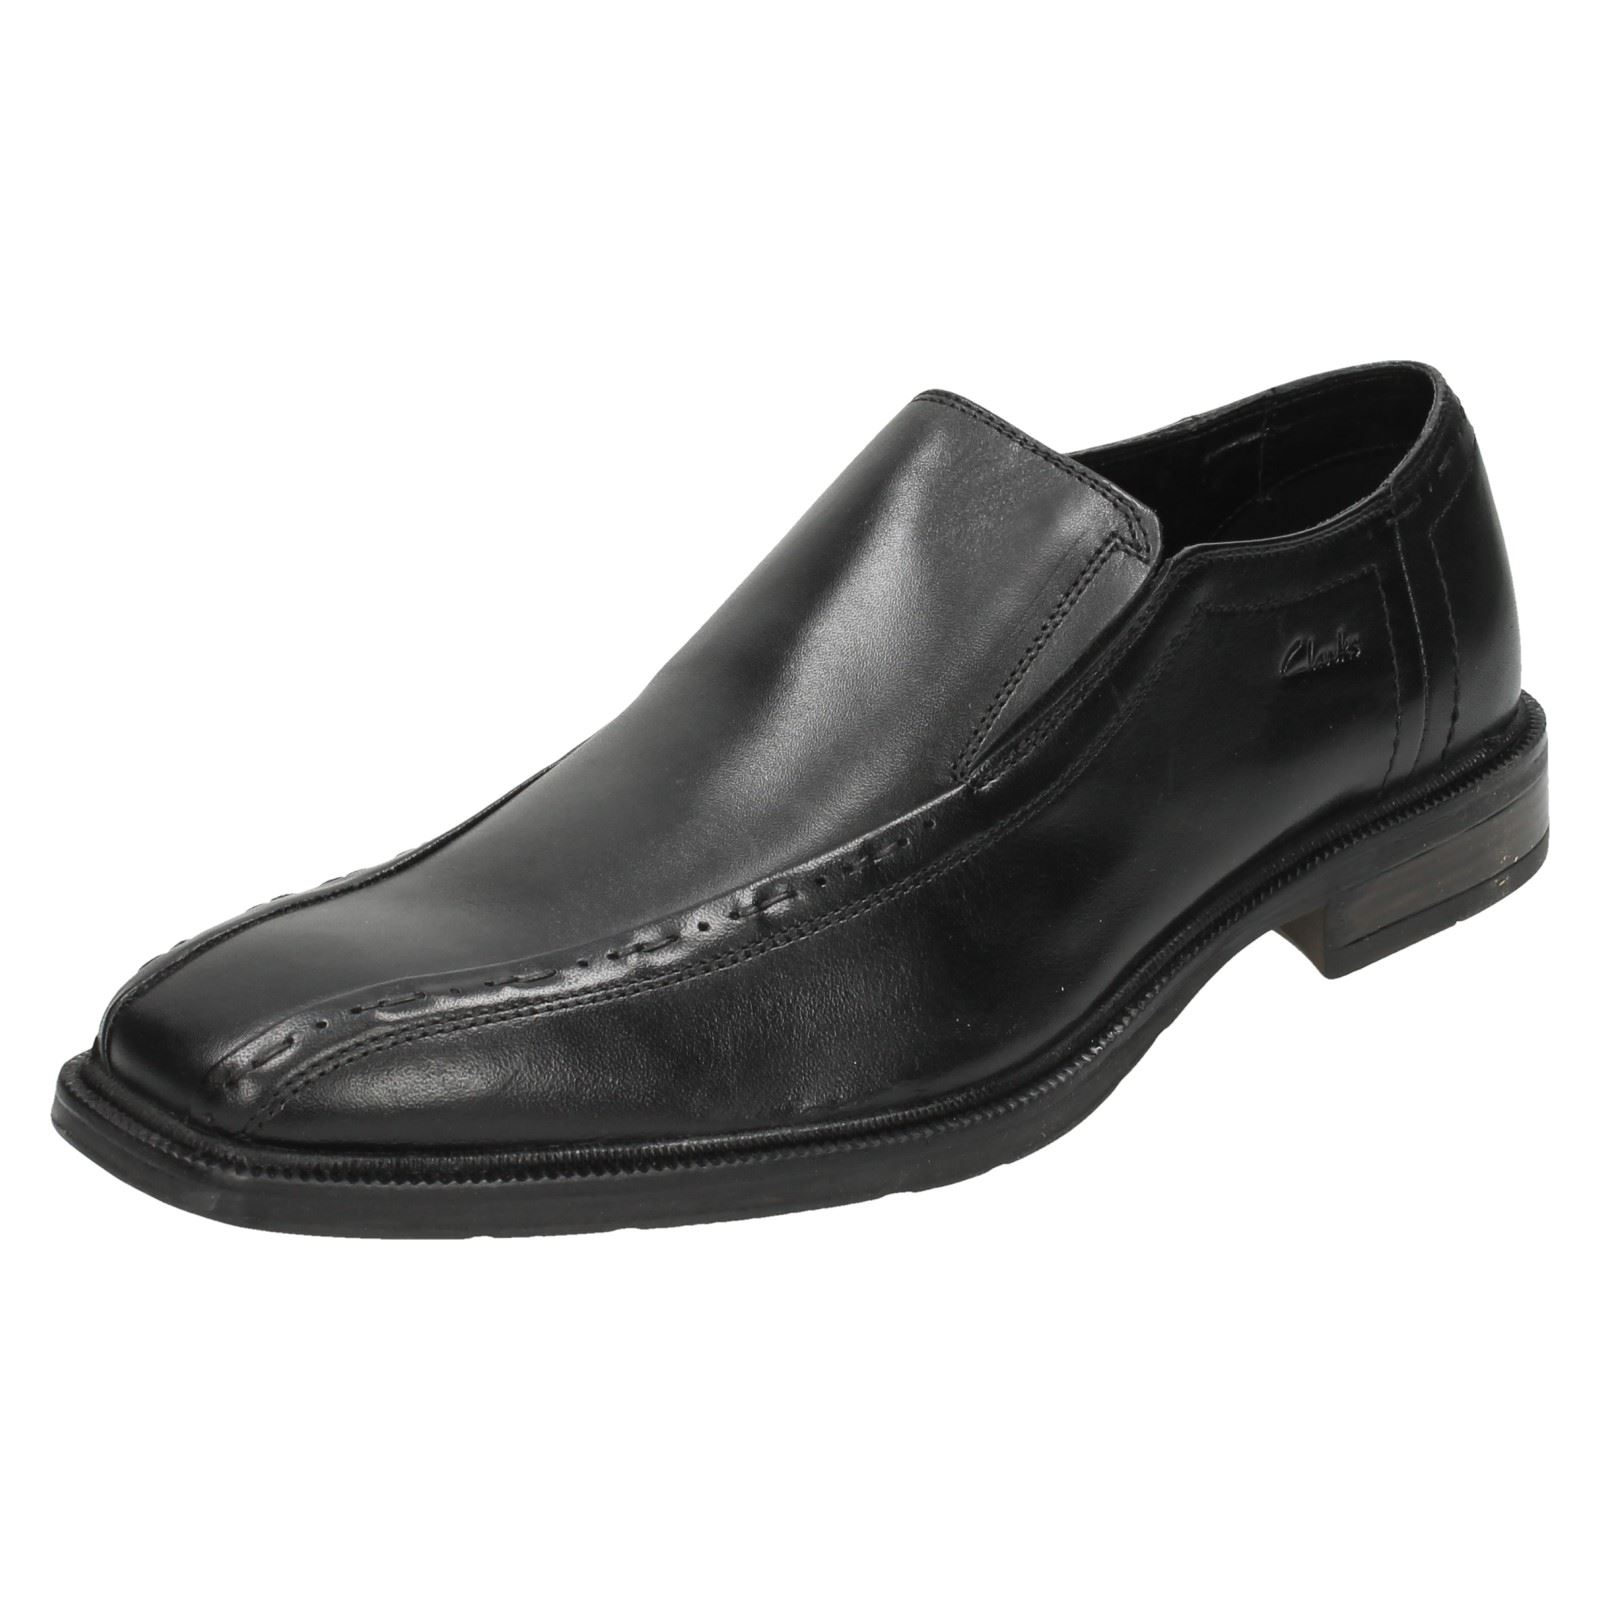 Uomo Slip Clarks Belz Out Formal Slip Uomo On Schuhes 931005